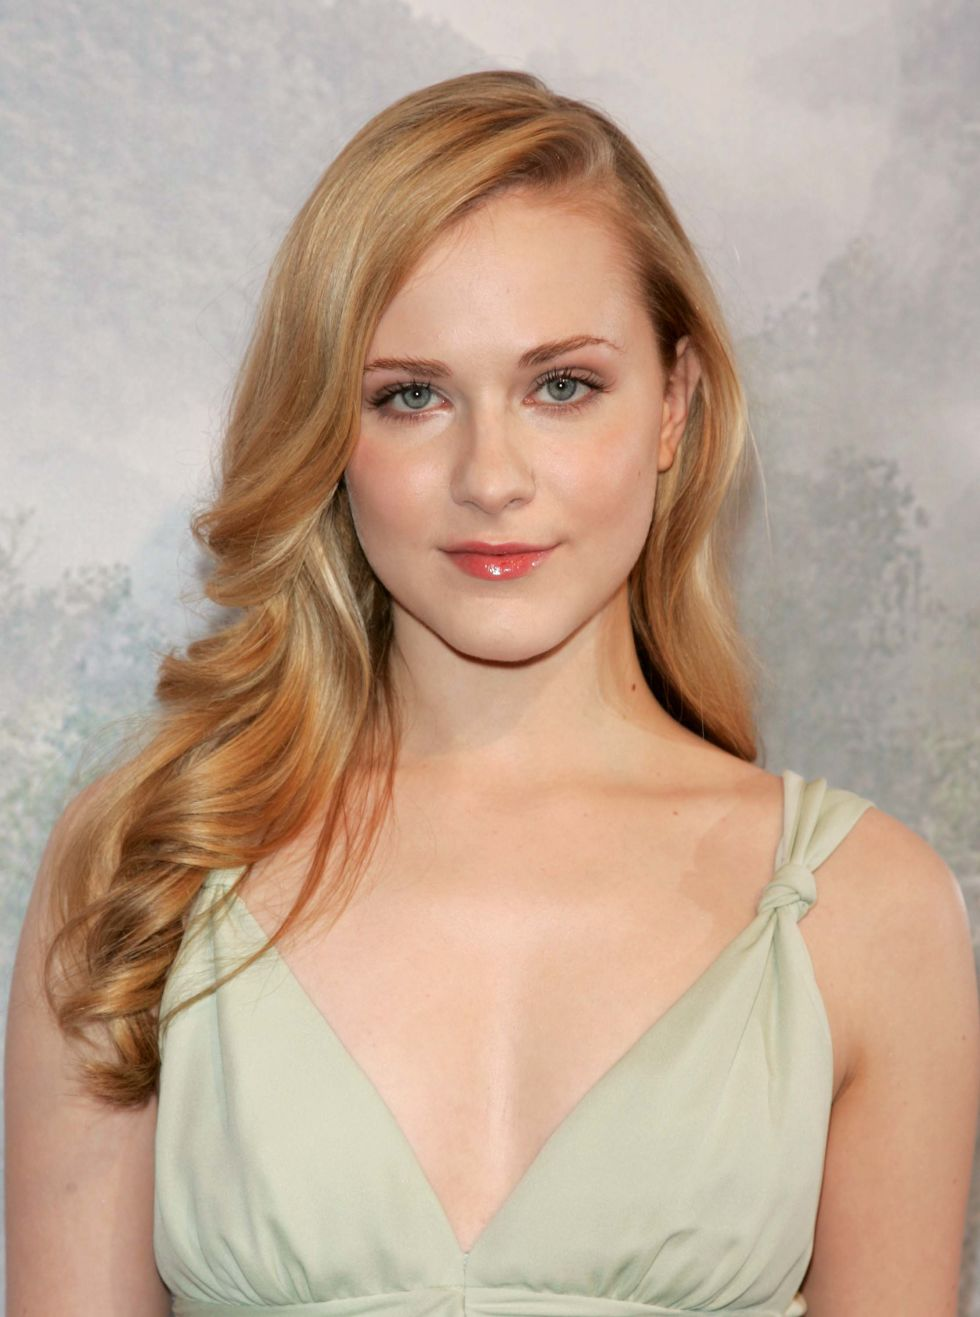 Actresses Under 30 With Blonde Hair